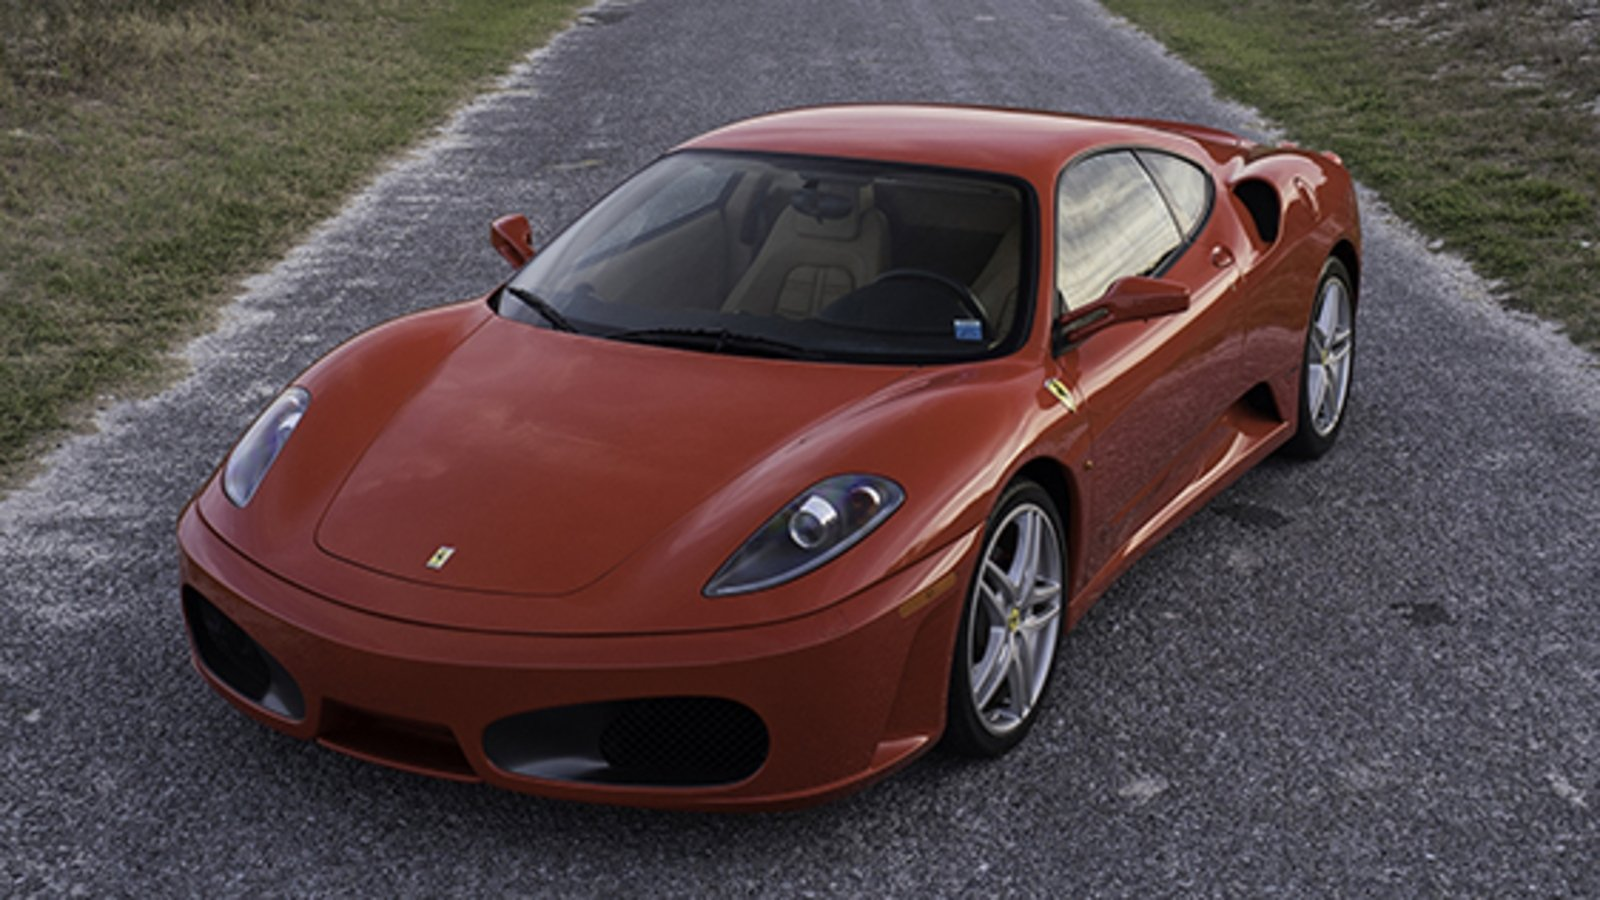 Did Trump's Name And Previous Ownership Condemn This Ferrari F430? News - Top Speed